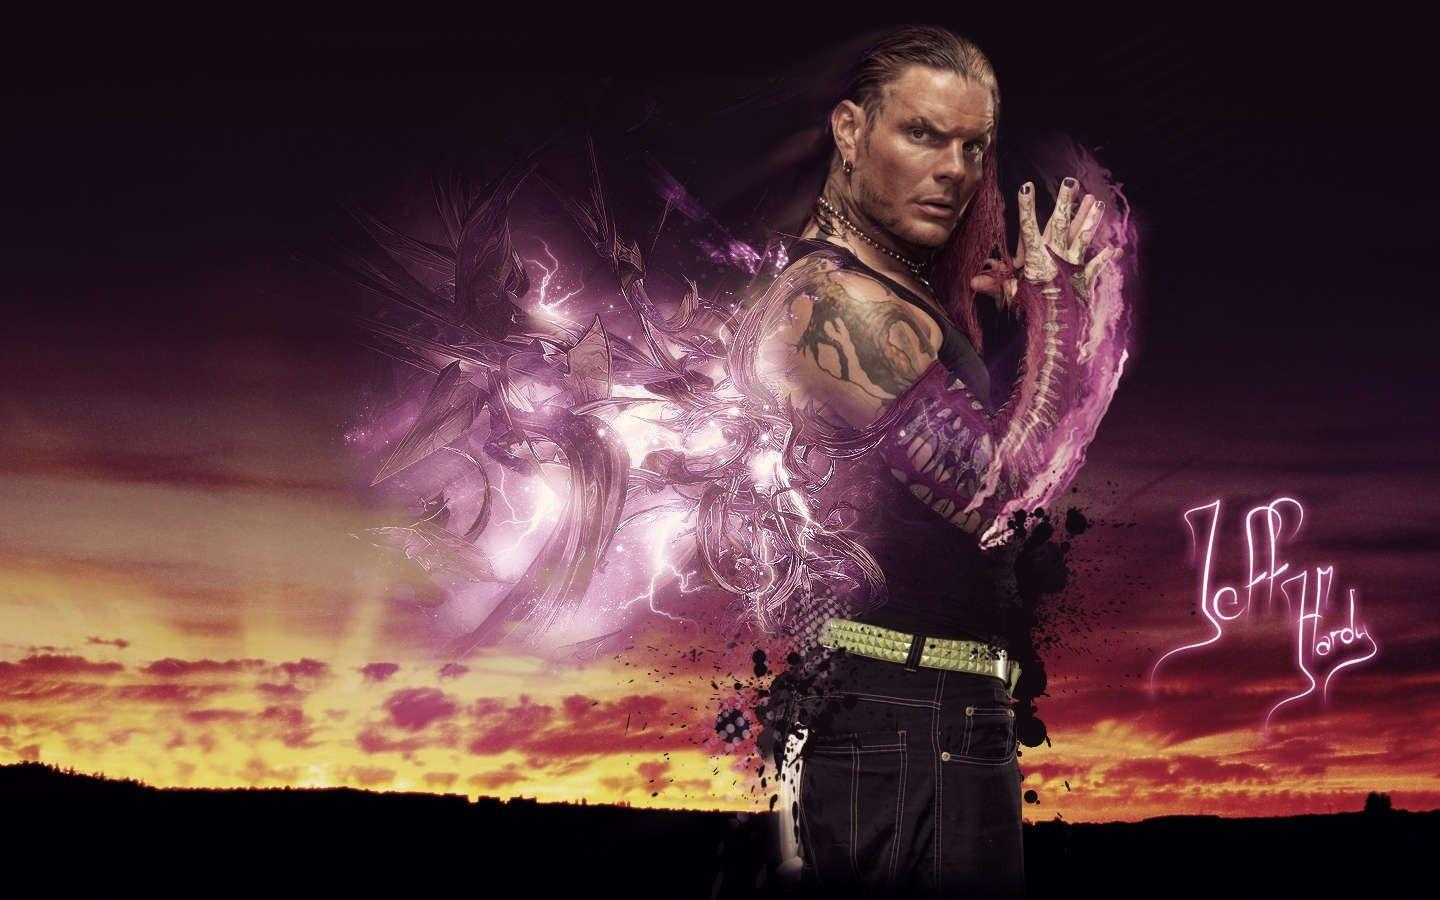 Wwe jeff hardy wallpapers wallpaper cave for Cool wwe pictures